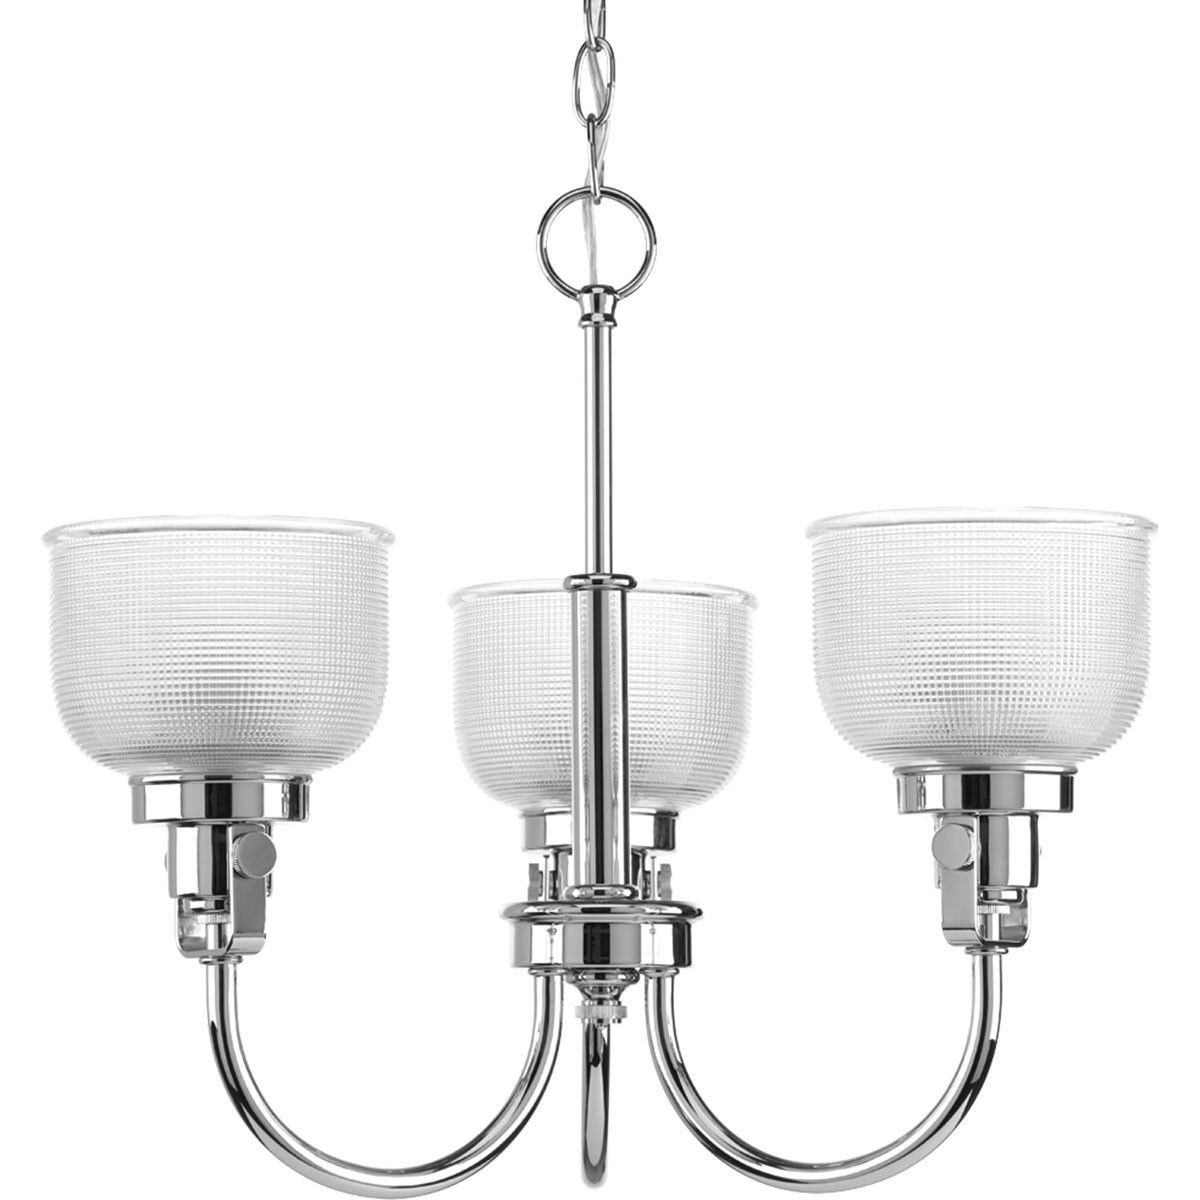 Archie Collection Chandeliers In Polished Chrome Finish By Progress Lighting From Outlet Authorized Dealer